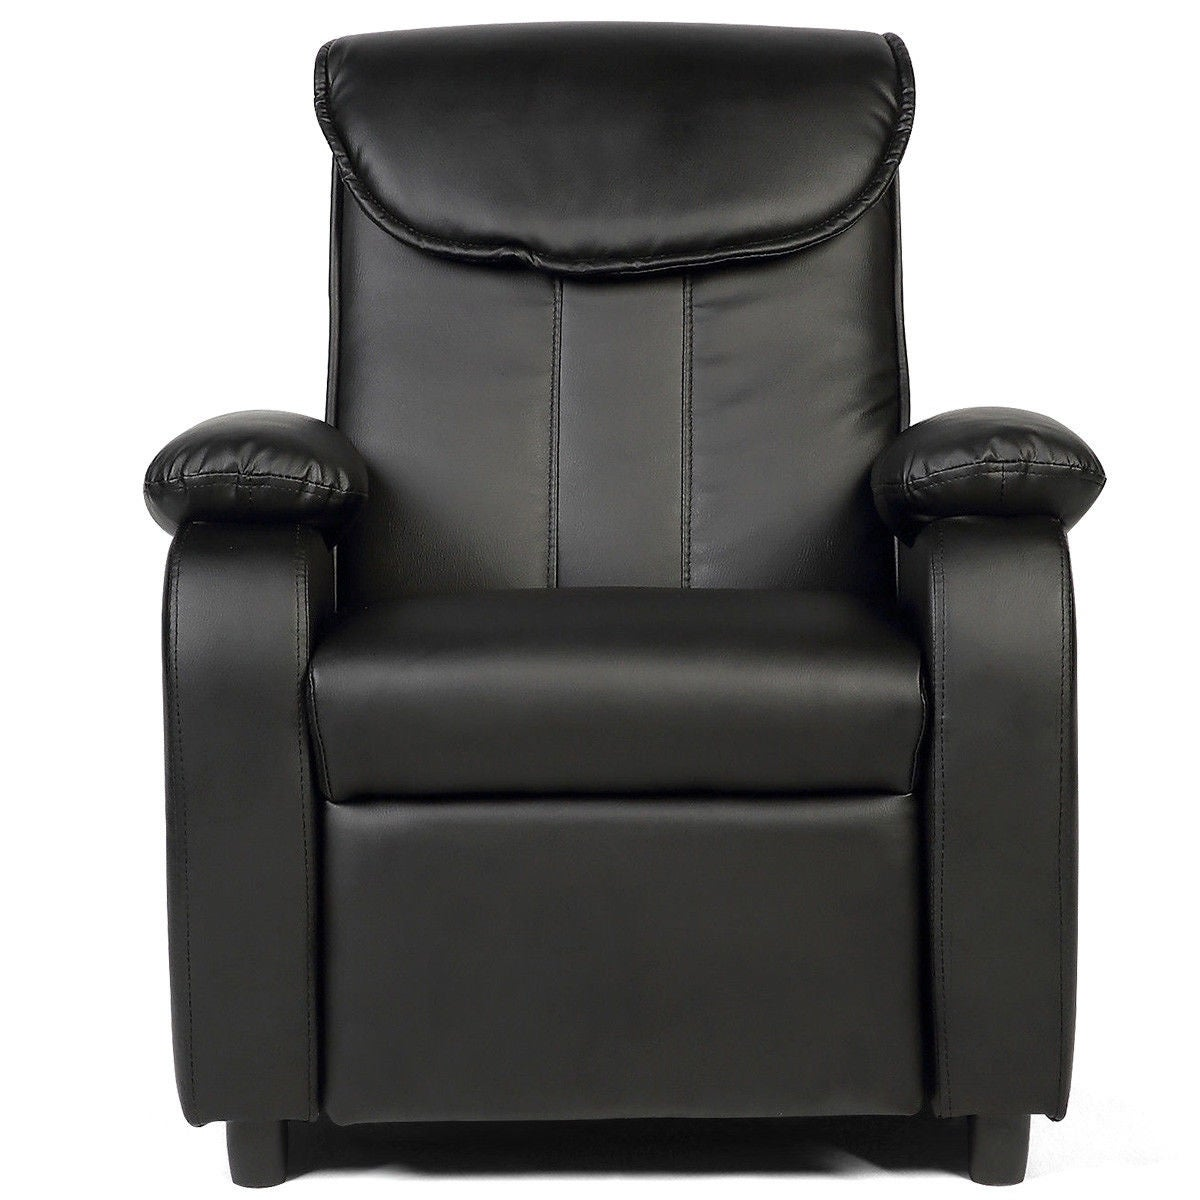 Shop costway kid recliner sofa armrest chair couch children living room furniture home black free shipping today overstock com 18878626